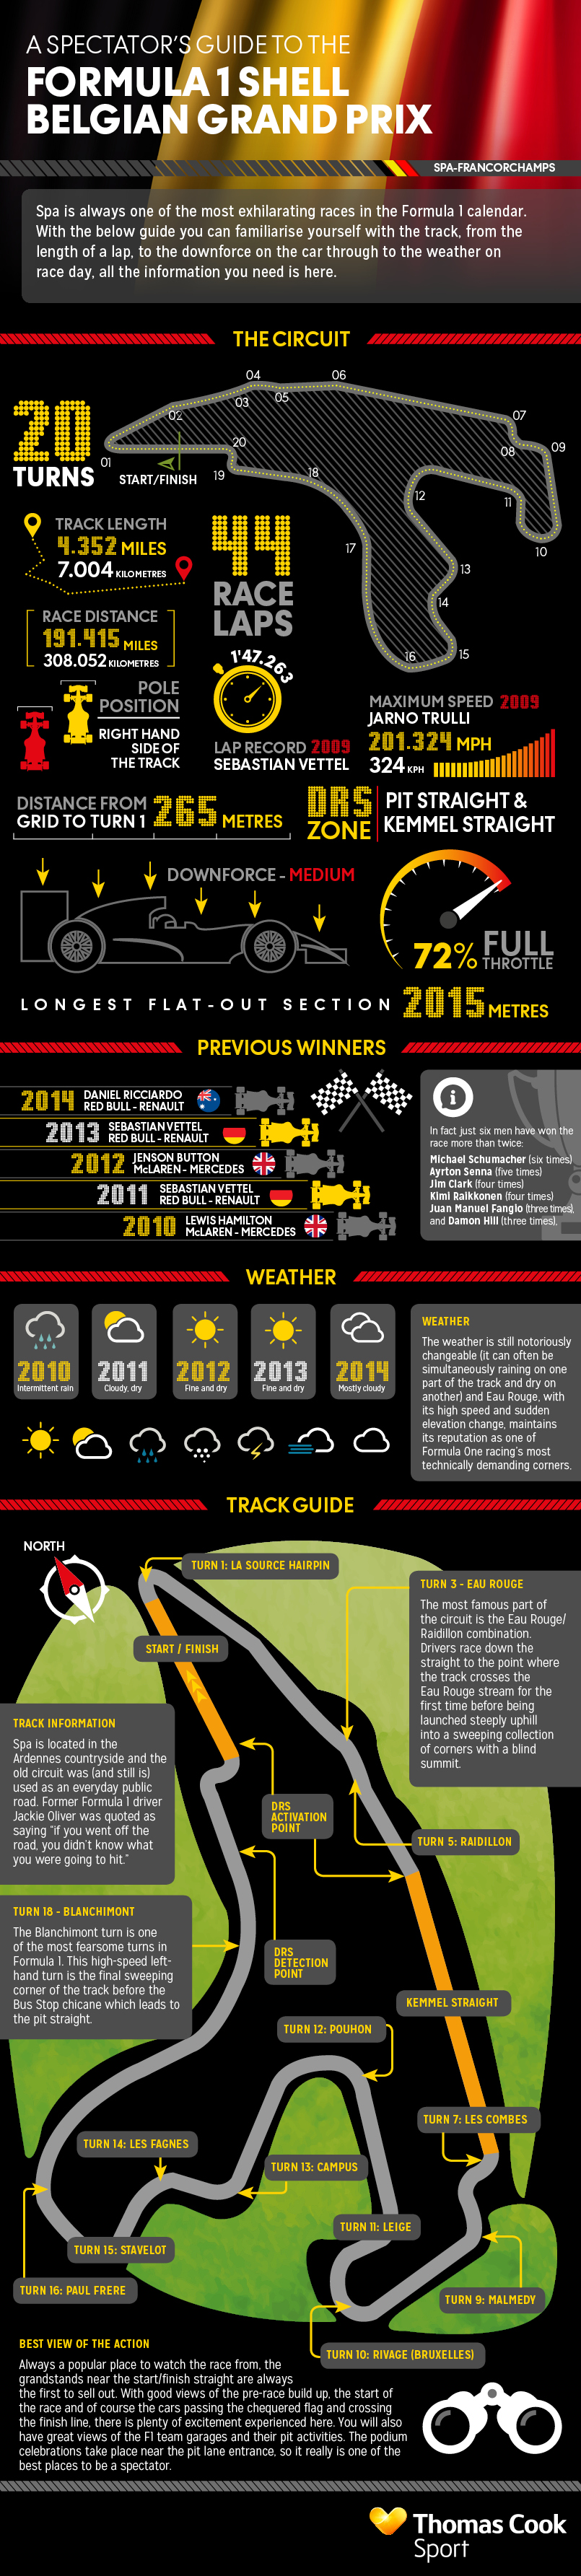 The Spectators Guide to the Formula 1 Belgium Grand Prix